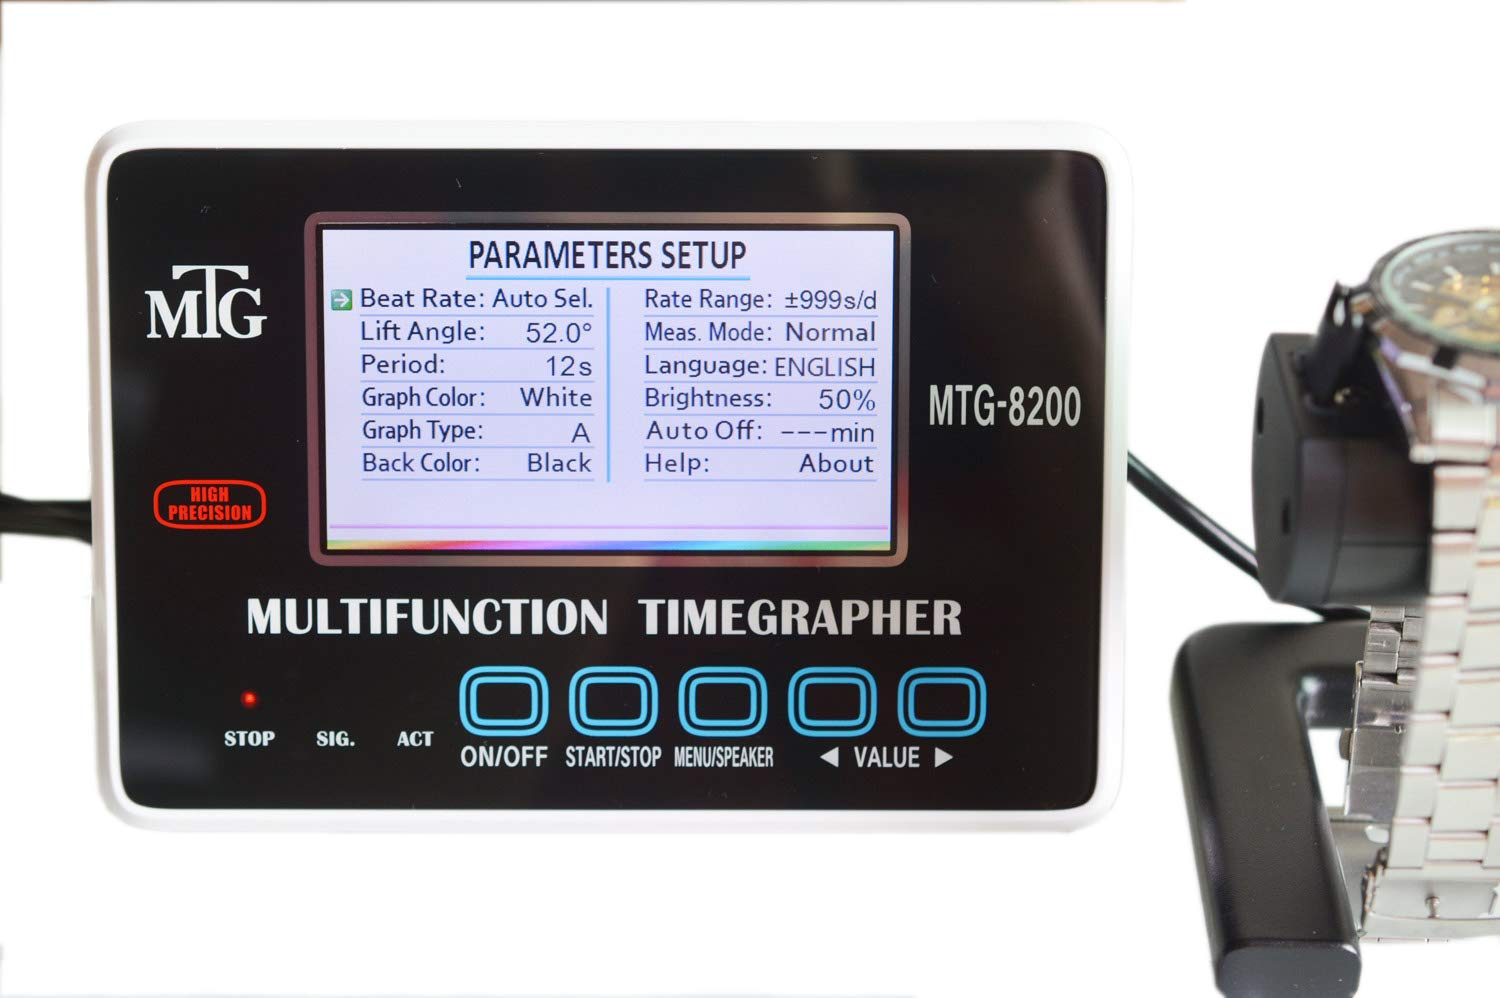 Mechanical Tester Timing Multifunction Timegrapher MTG-8200 Touch Button